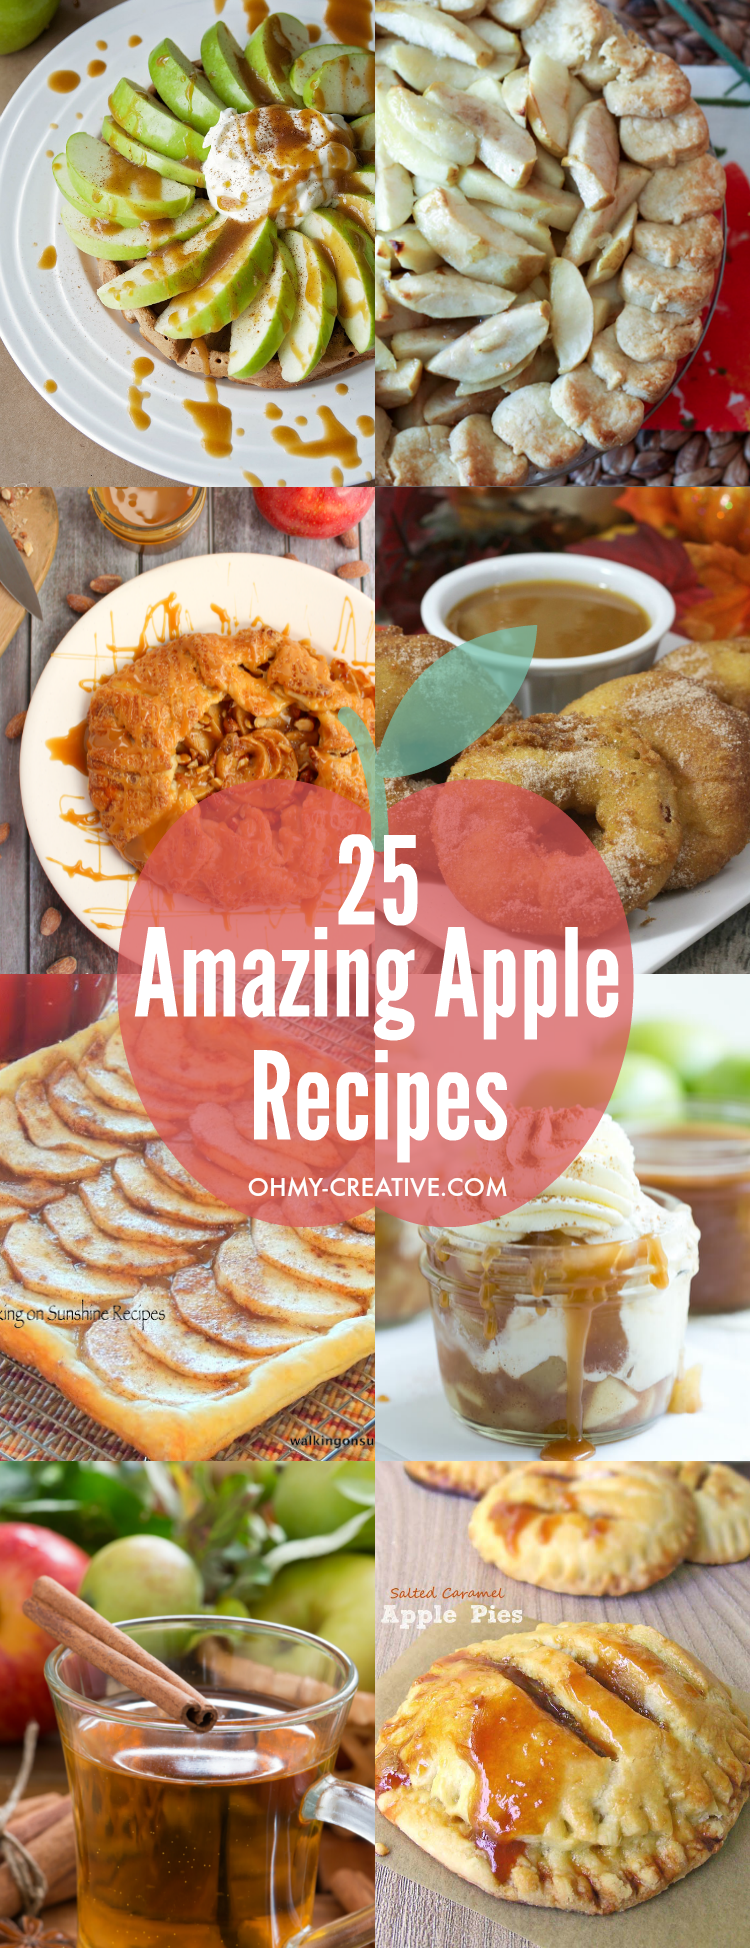 These 25 Amazing Apple Recipes are sinfully delicious and full of flavor just like mom use to make! I must try them all! | OHMY-CREATIVE.COM